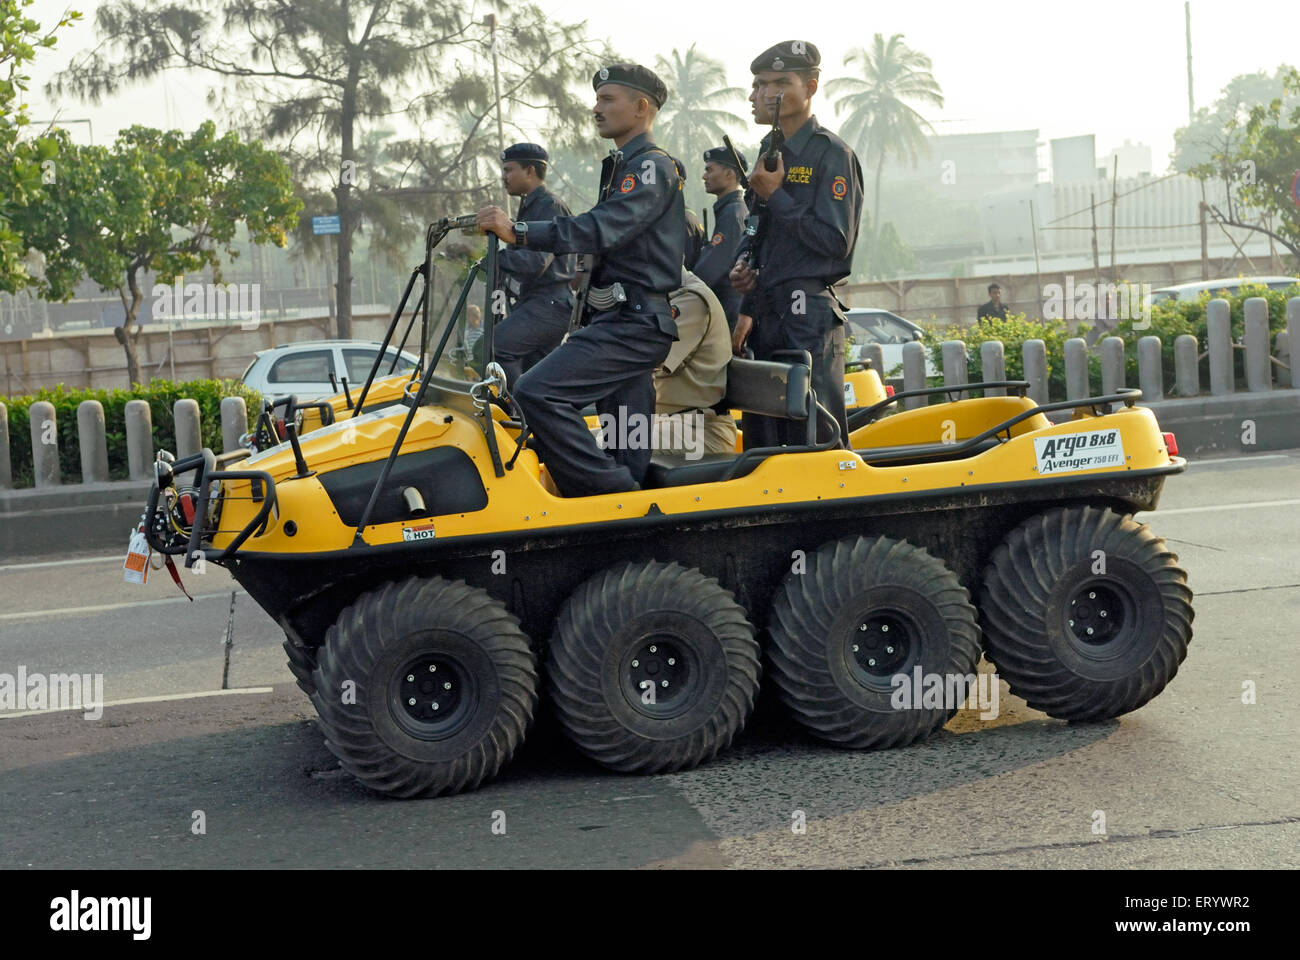 Mumbai police commandos in eight wheel amphibious vehicle at marine drive  ; Bombay ; Mumbai ; Maharashtra  ; India - Stock Image